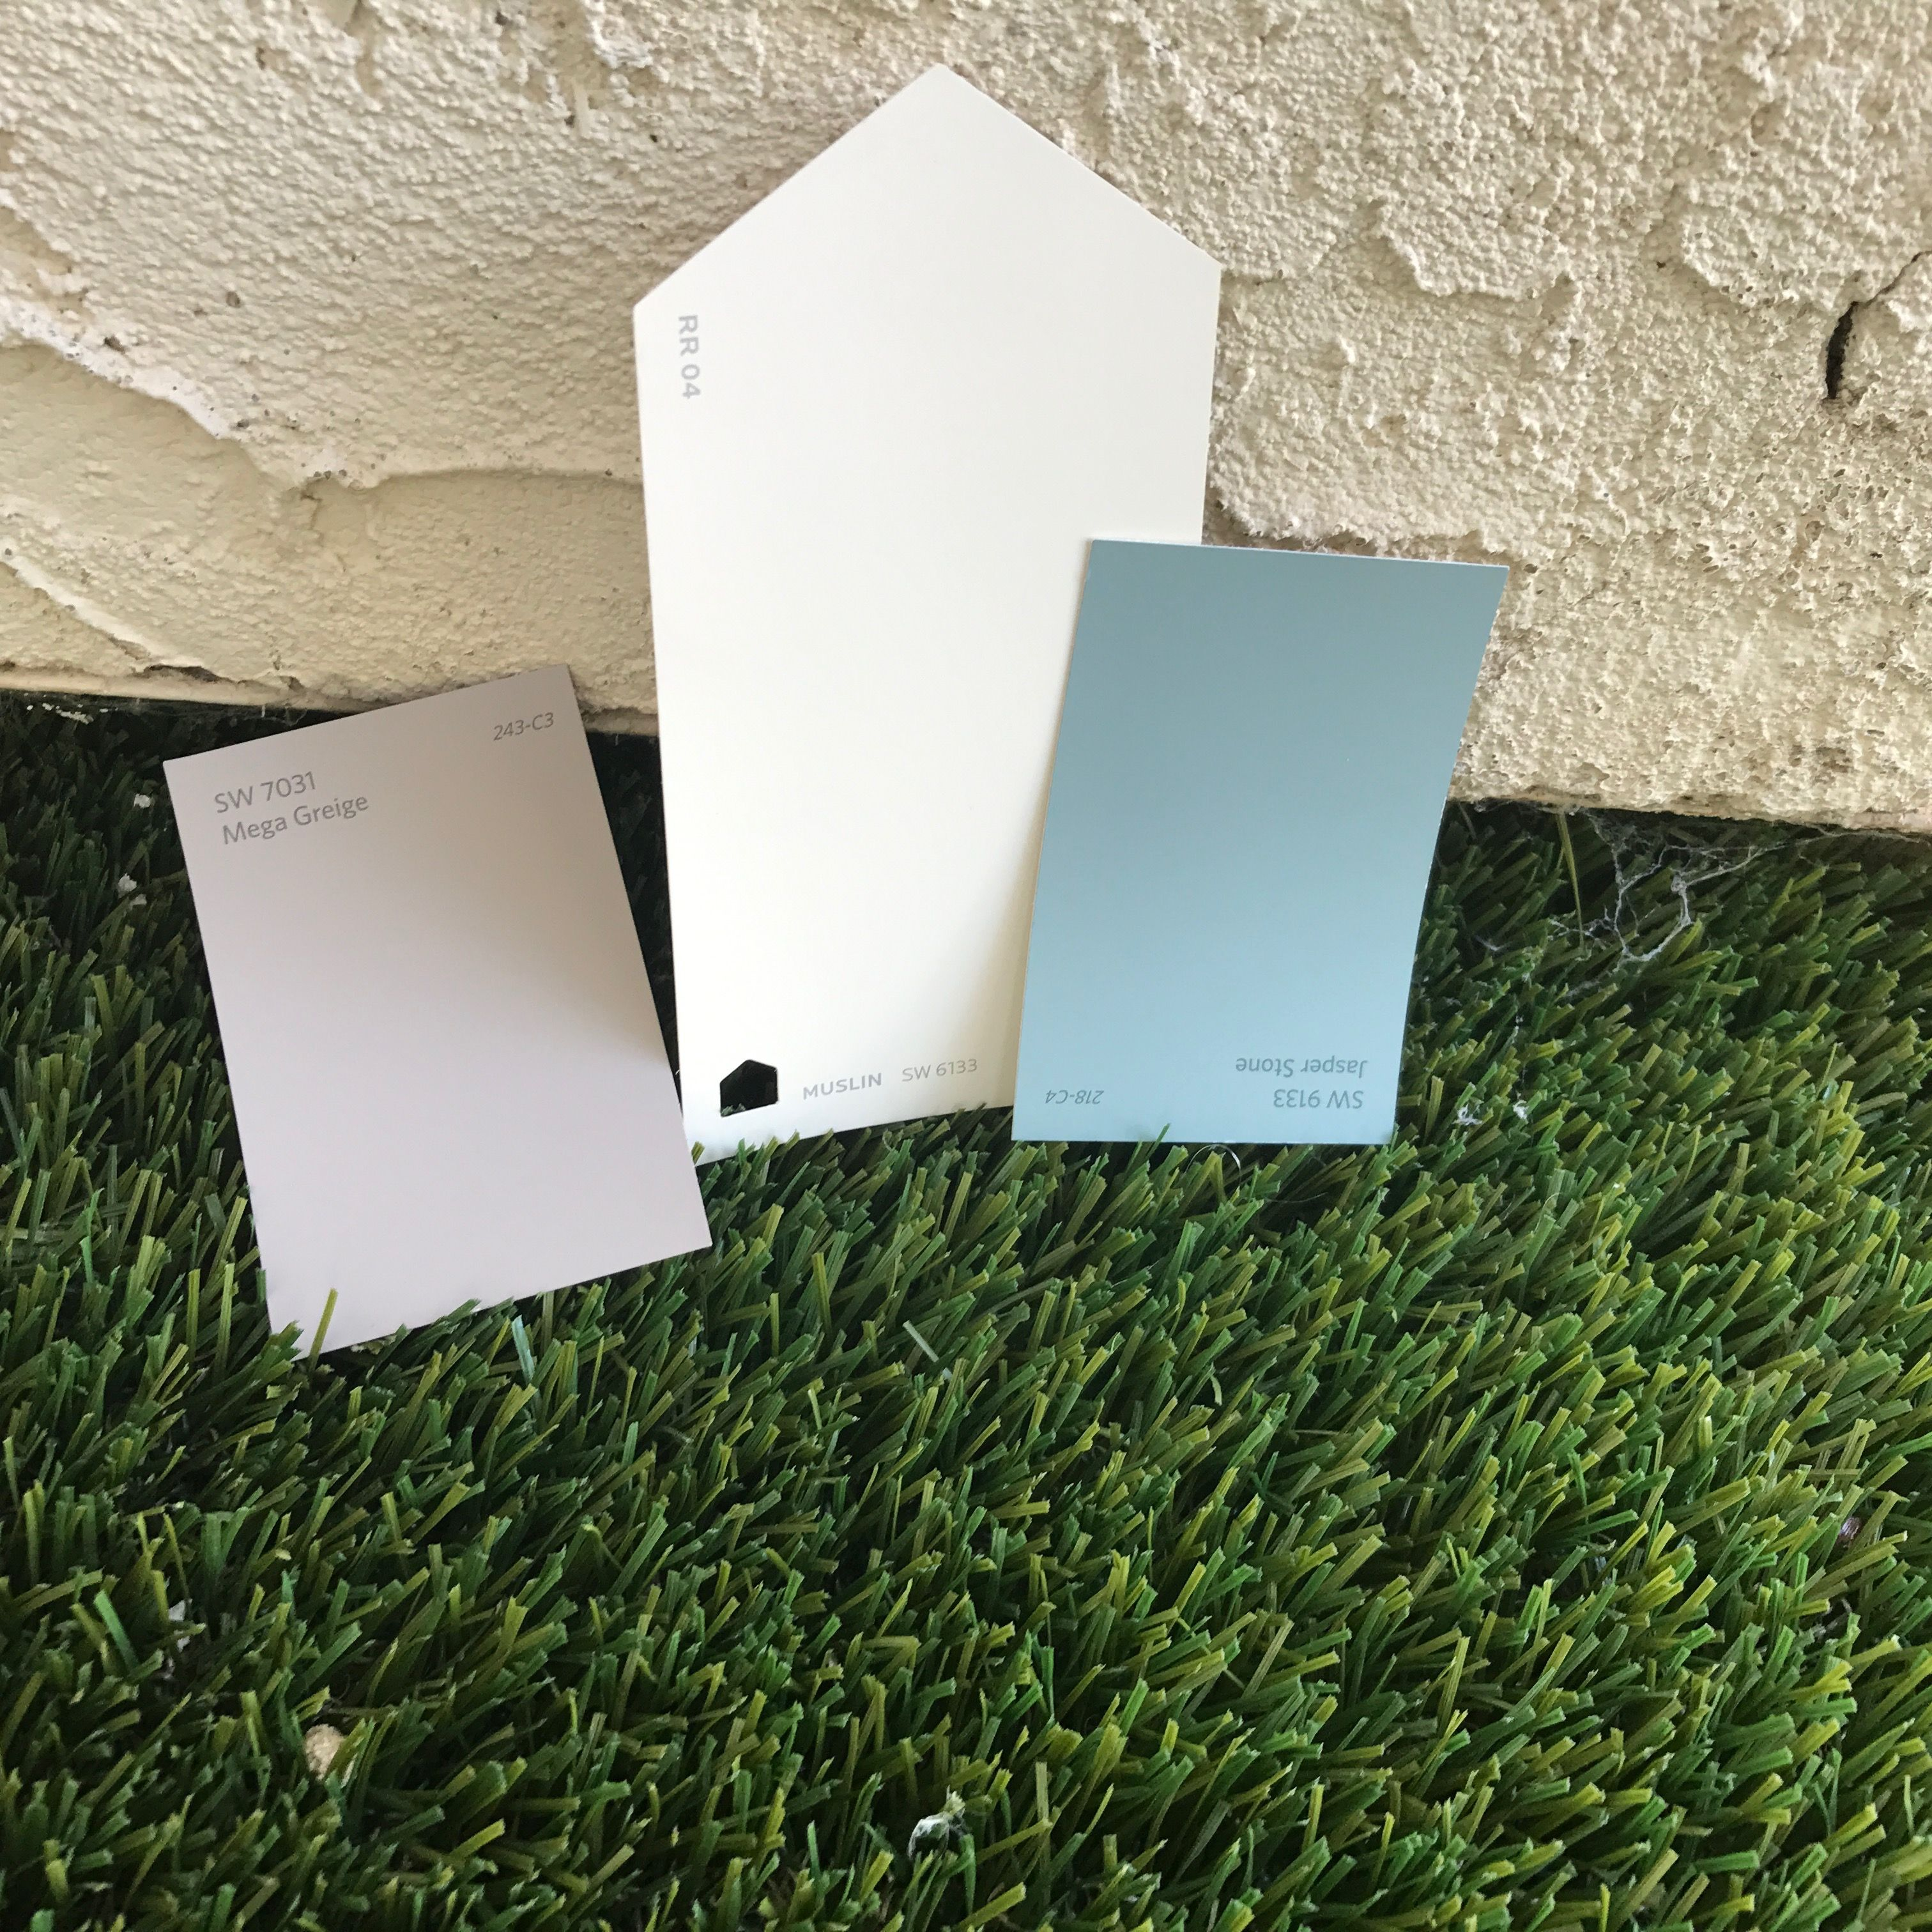 Mega Greige Exterior Paint: Pin By Joanne Briggs On Exterior Colors